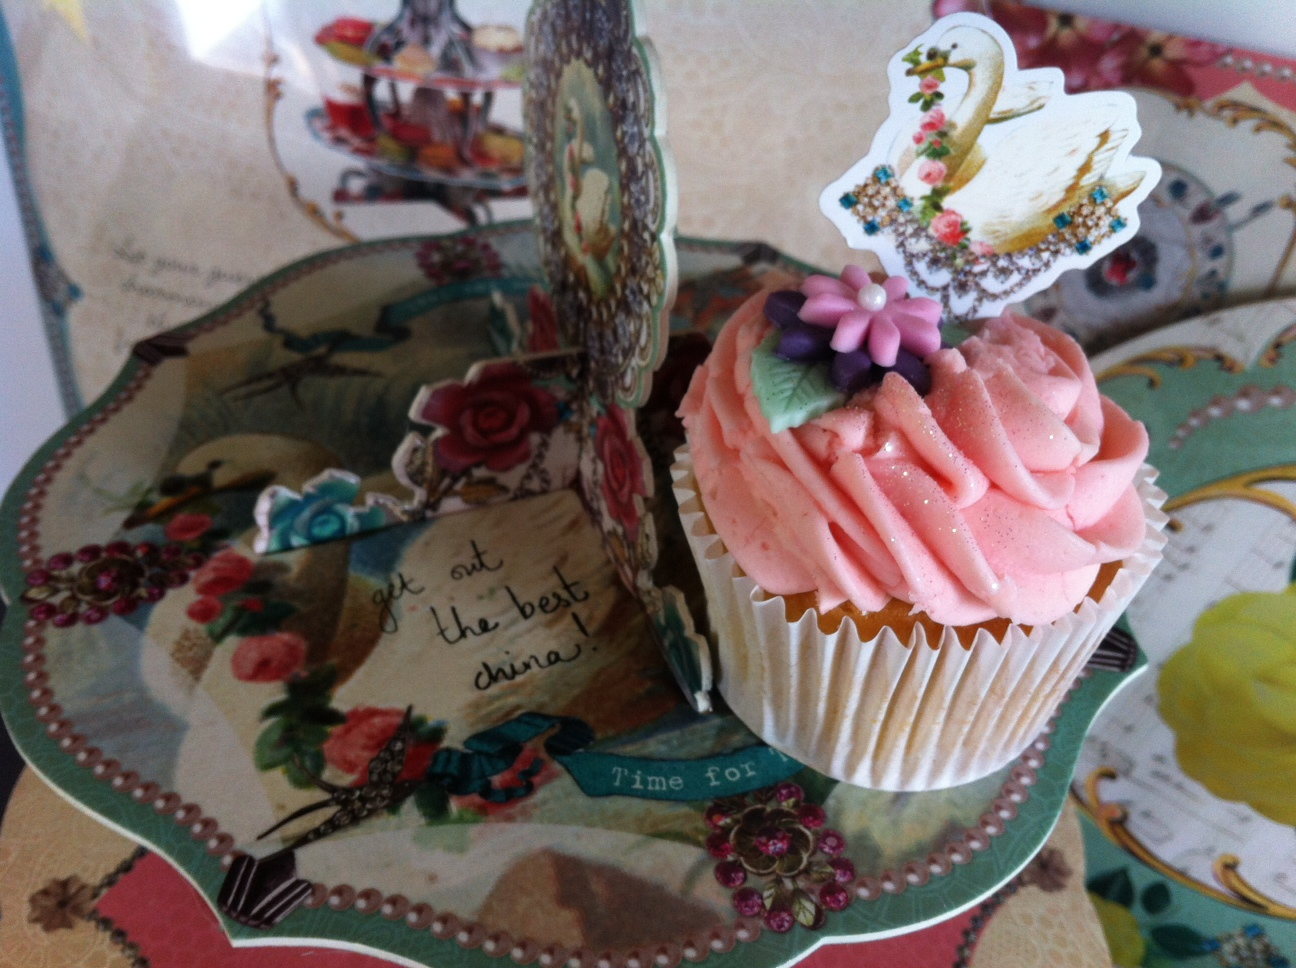 Cupcake Bakers, Prepare to Drool. Glorious Cake Stands from Talking Tables